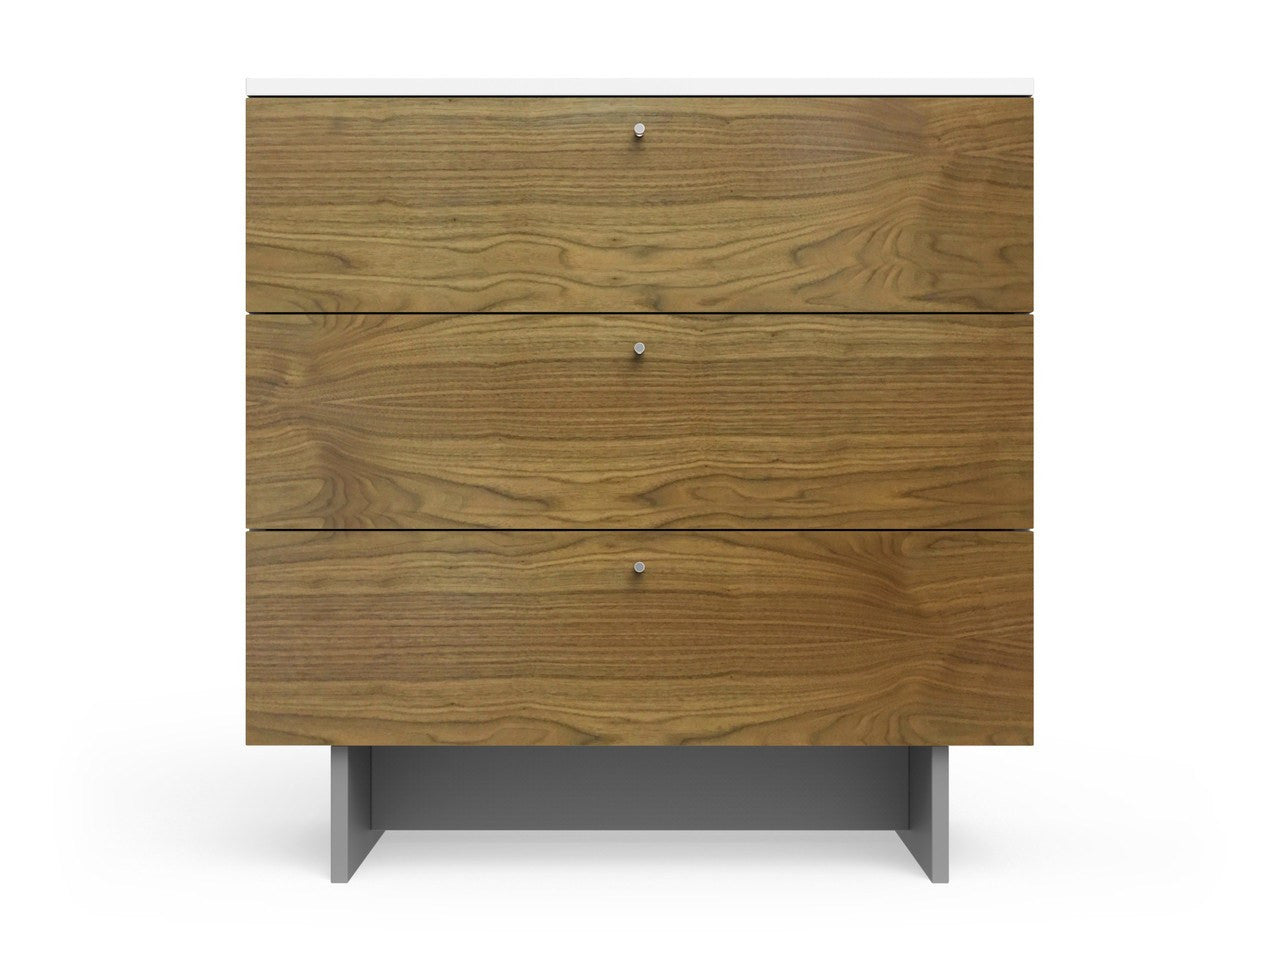 "Spot on Square Spot On Square Roh Dresser 34"" - fawn&forest"